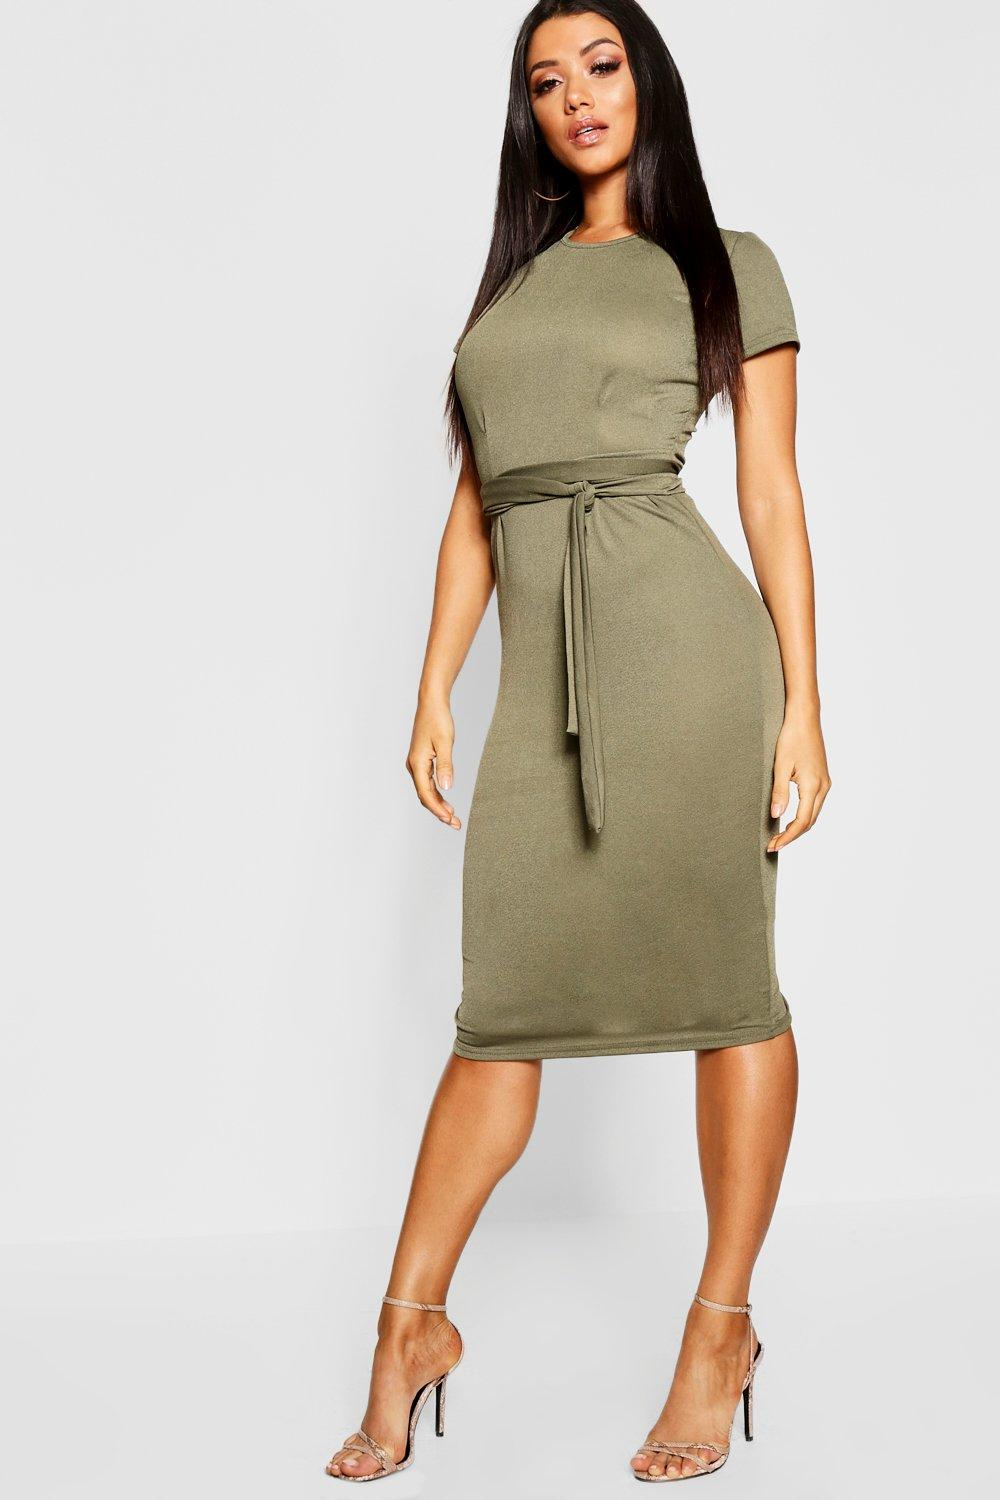 b9577a79334c Boohoo Pleat Front Belted Tailored Midi Dress in Green - Lyst